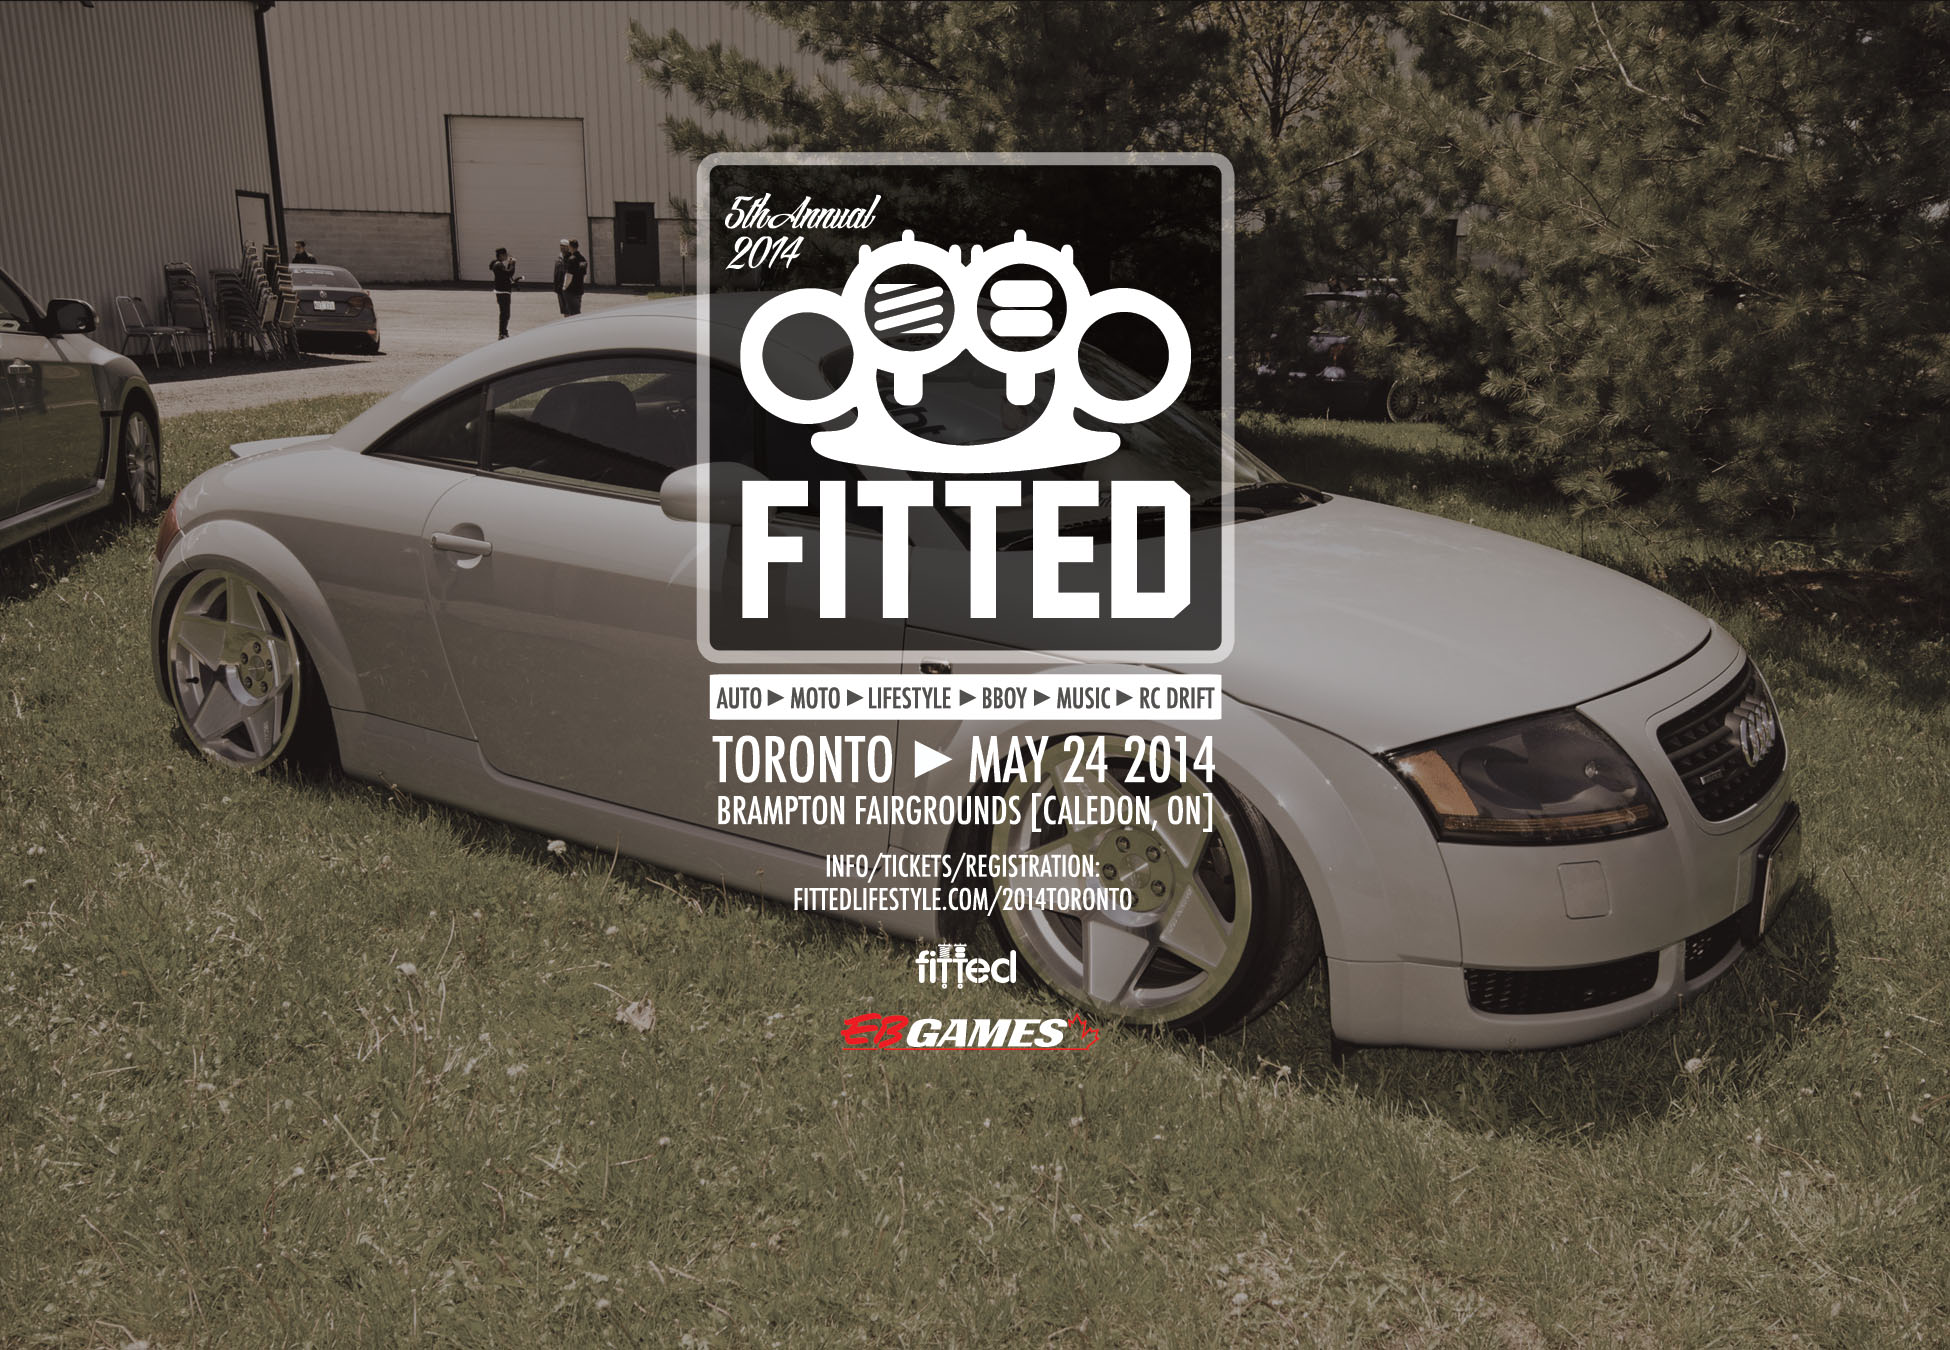 PASMAG-2014-Fitted-5th-Annual-Car-Show-Toronto-Brampton-Auto-Moto-Lifestyle-Bboy-Music-RC-Drift-May-24-2014-front